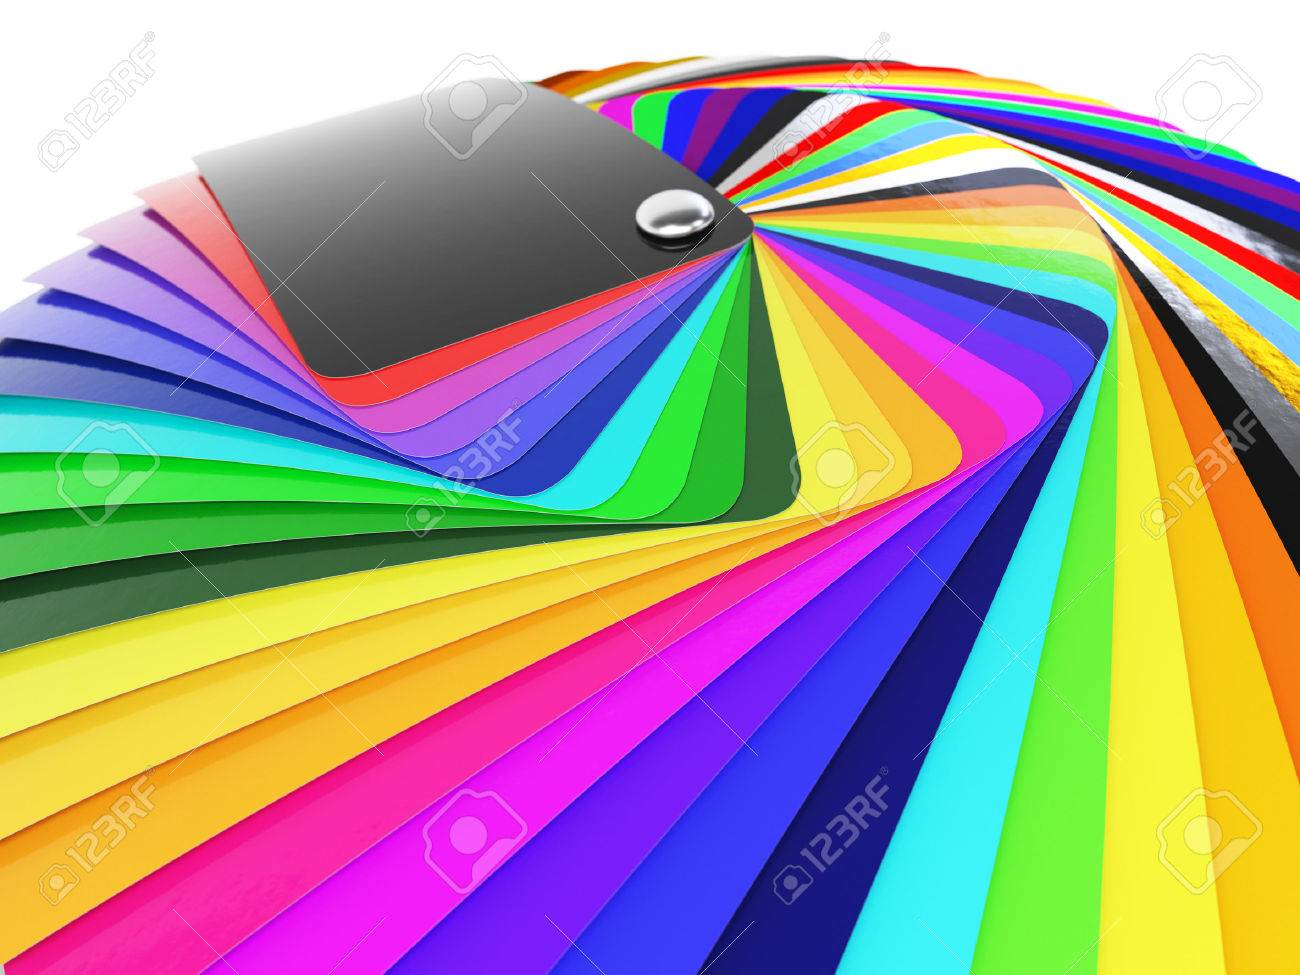 Car Wrapping Film Color Palette Swatch 3d Render Stock Photo